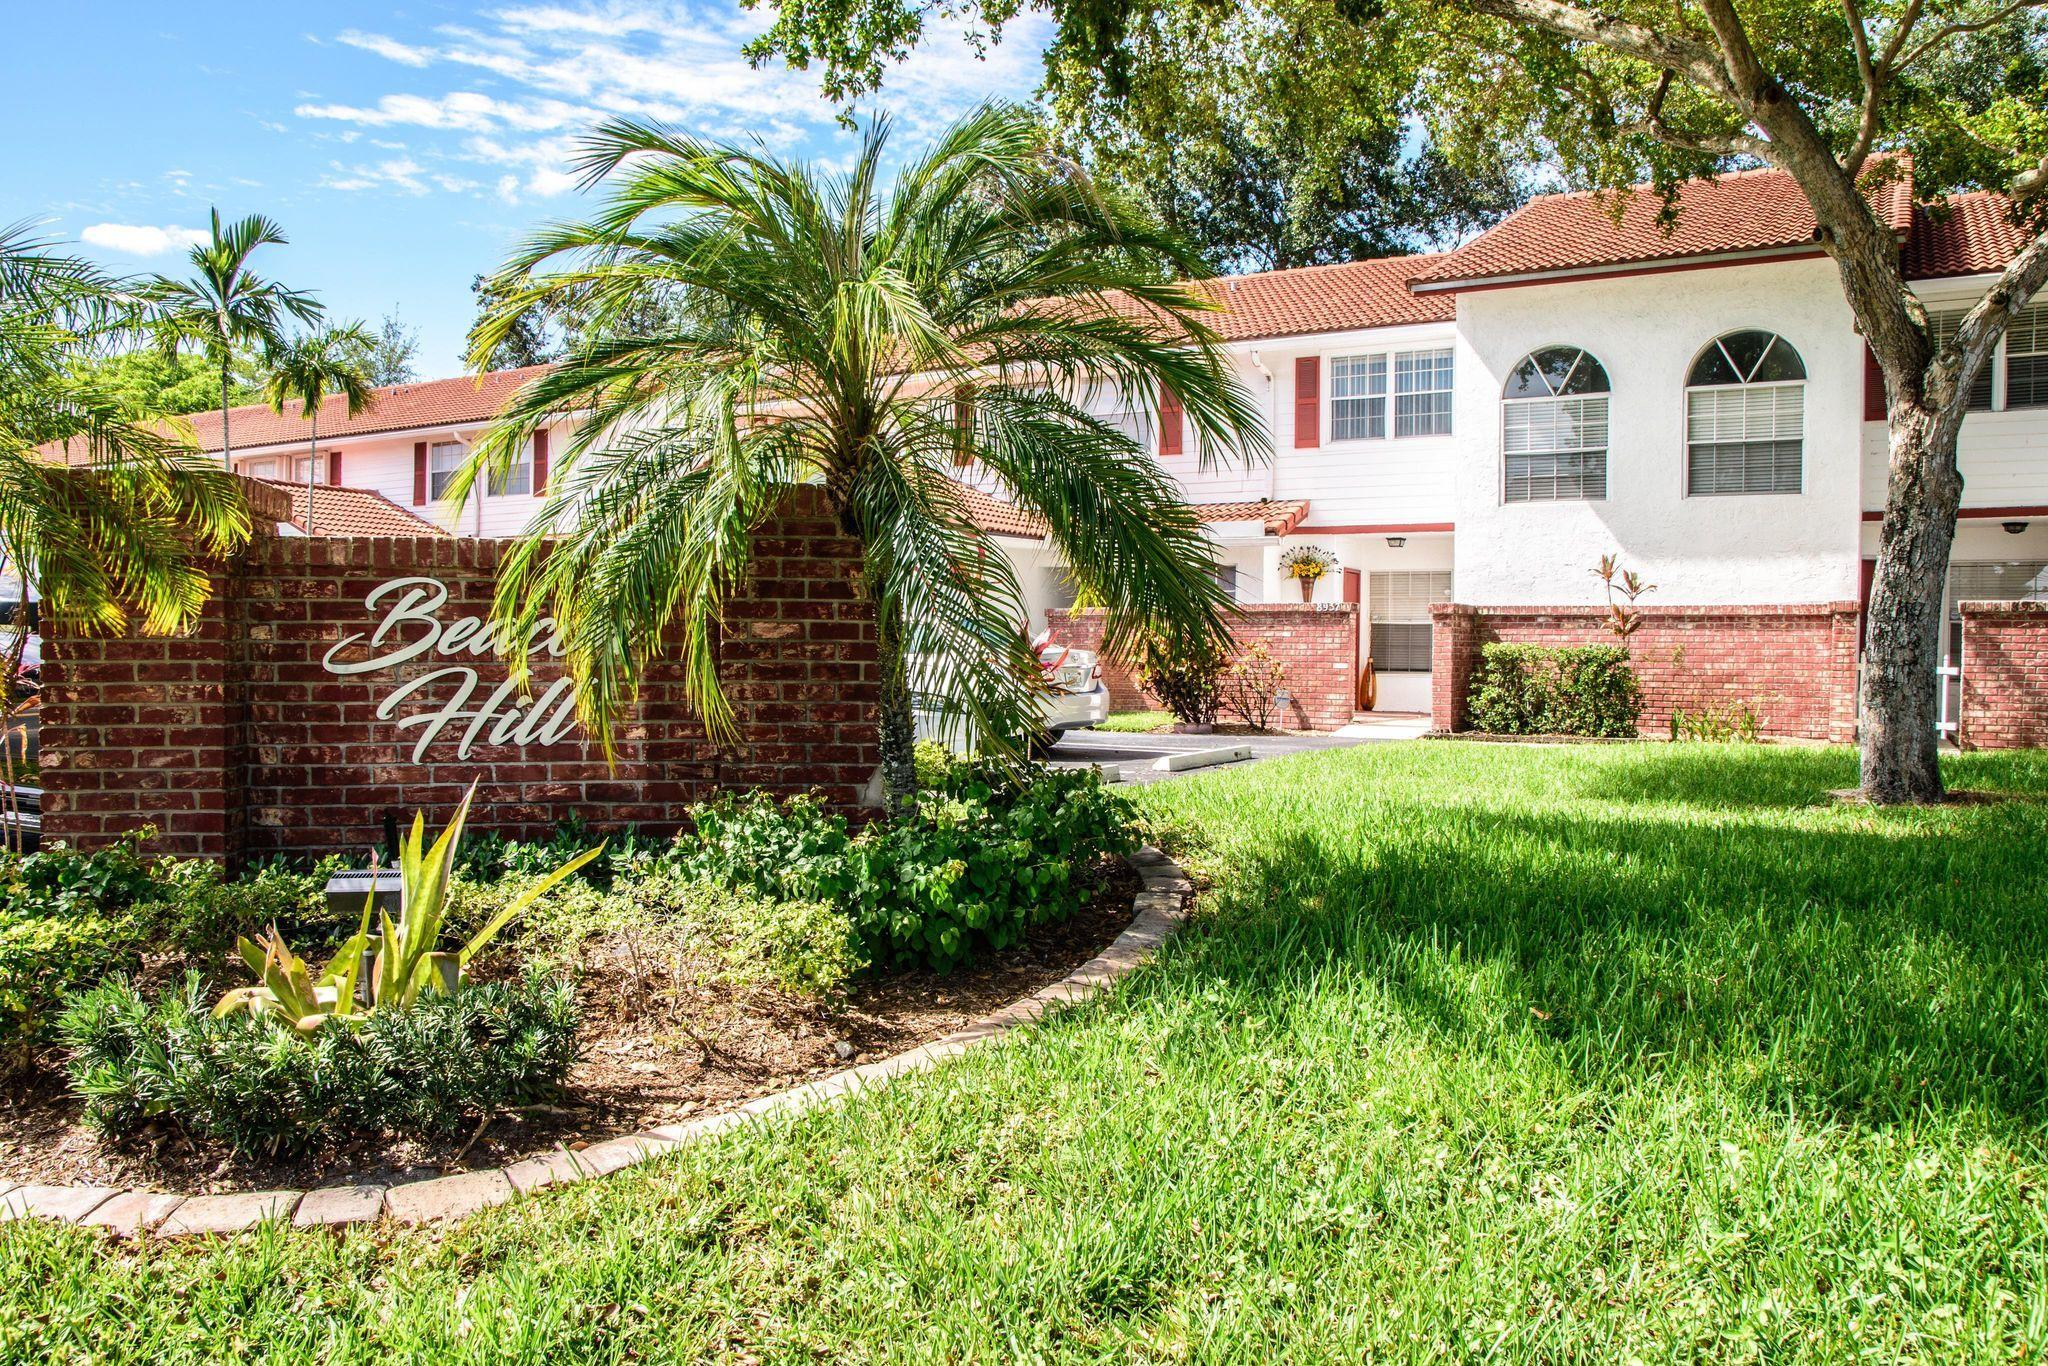 8937 23rd Street, Coral Springs, Florida 33065, 2 Bedrooms Bedrooms, ,2 BathroomsBathrooms,Rental,For Rent,23rd,RX-10689021